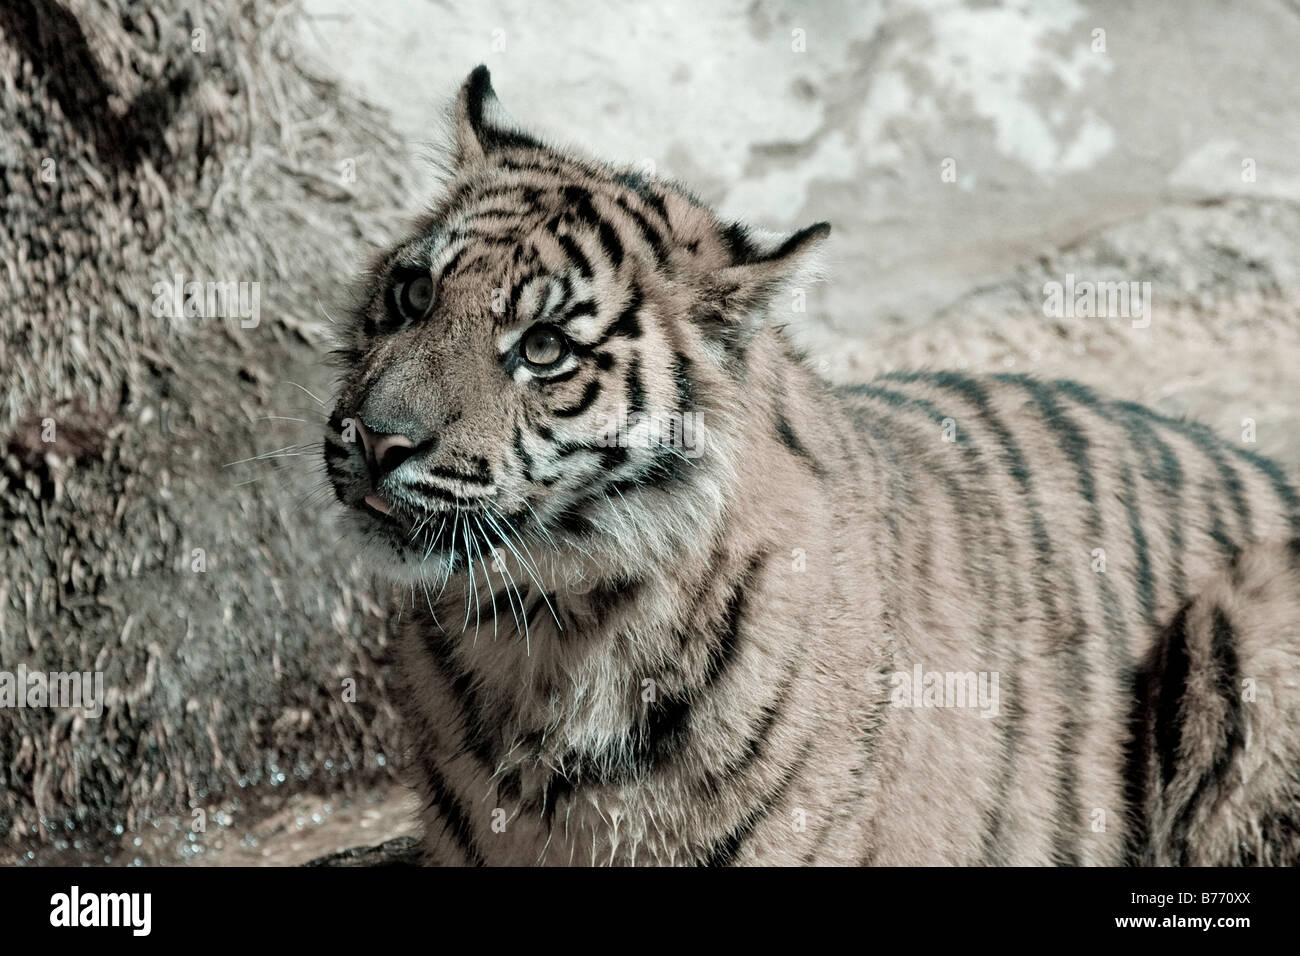 Sumatran Tiger Cub looks on arty shot - Stock Image